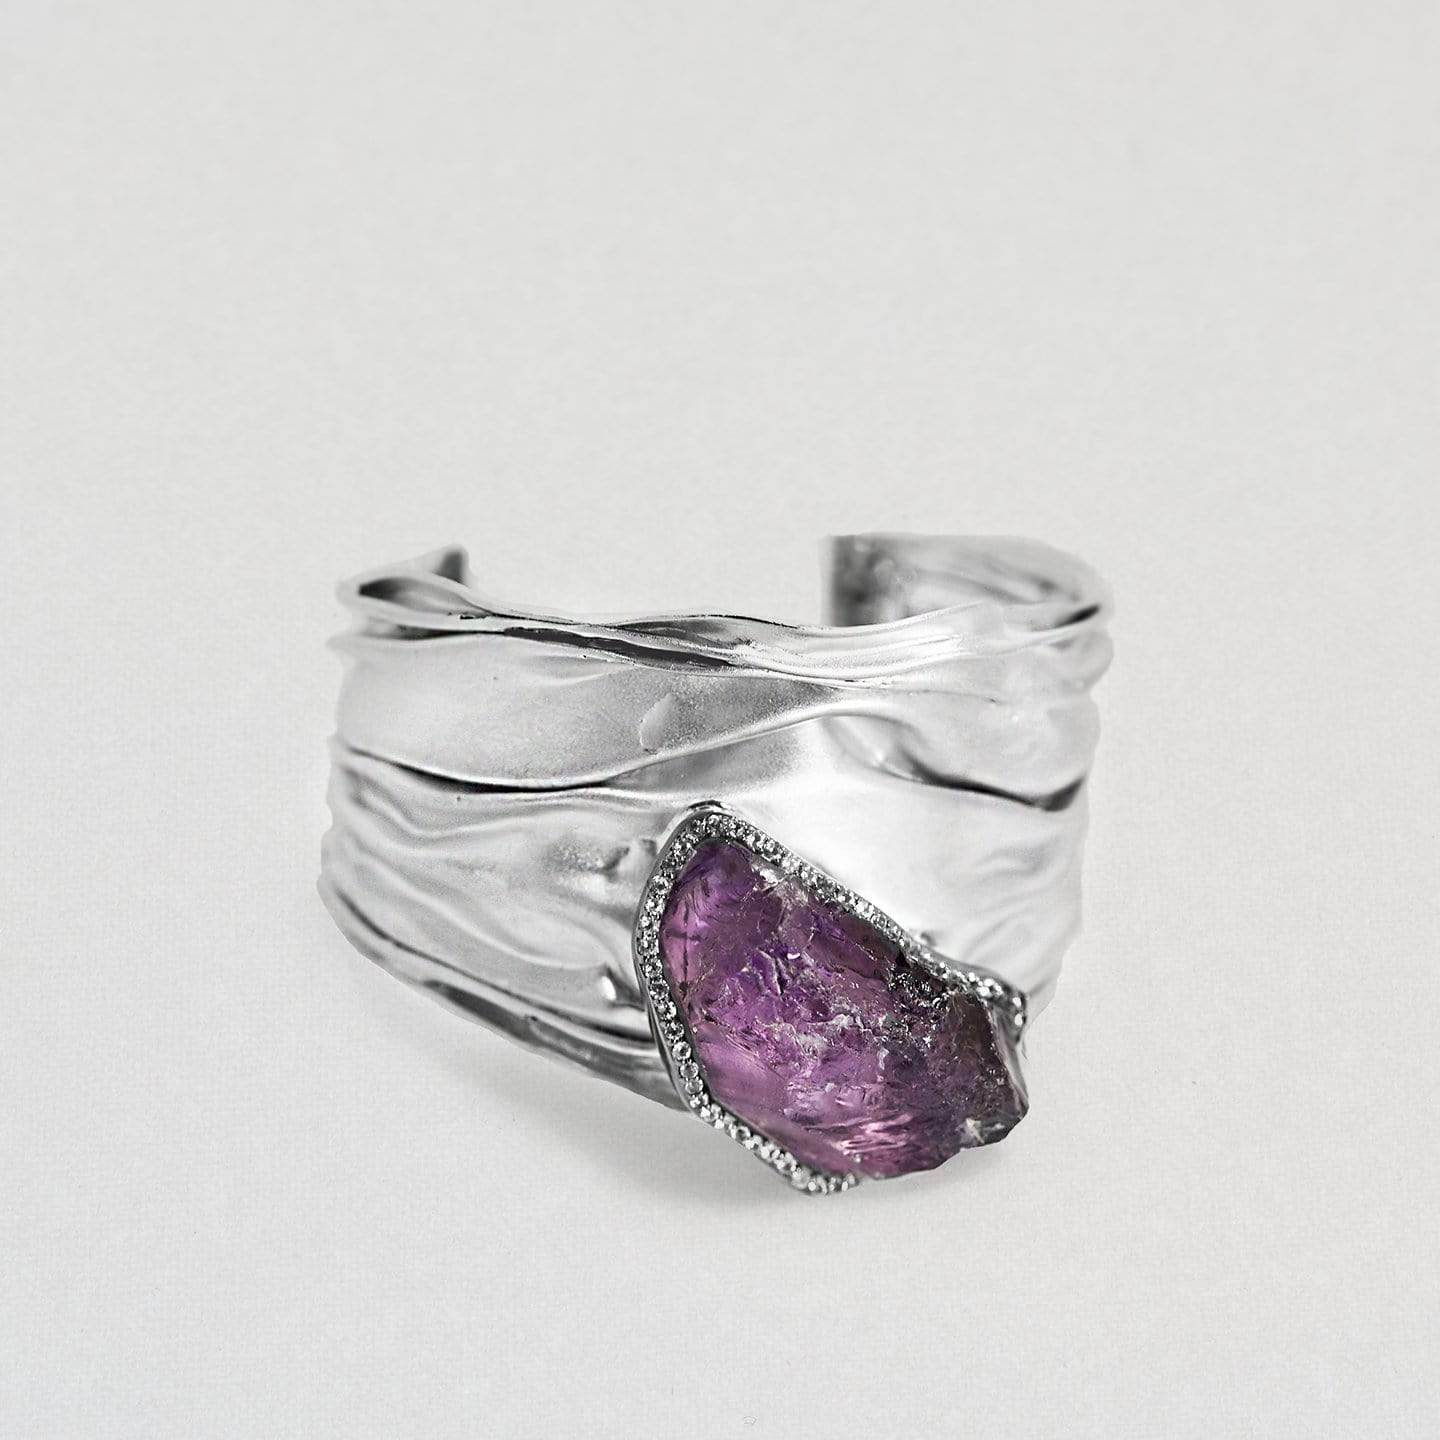 Aravis Bangle, Amethyst, Exclusive, gray, Rhodium, spo-disabled, StoneColor:purple, Style:Statement, Topaz Bangle